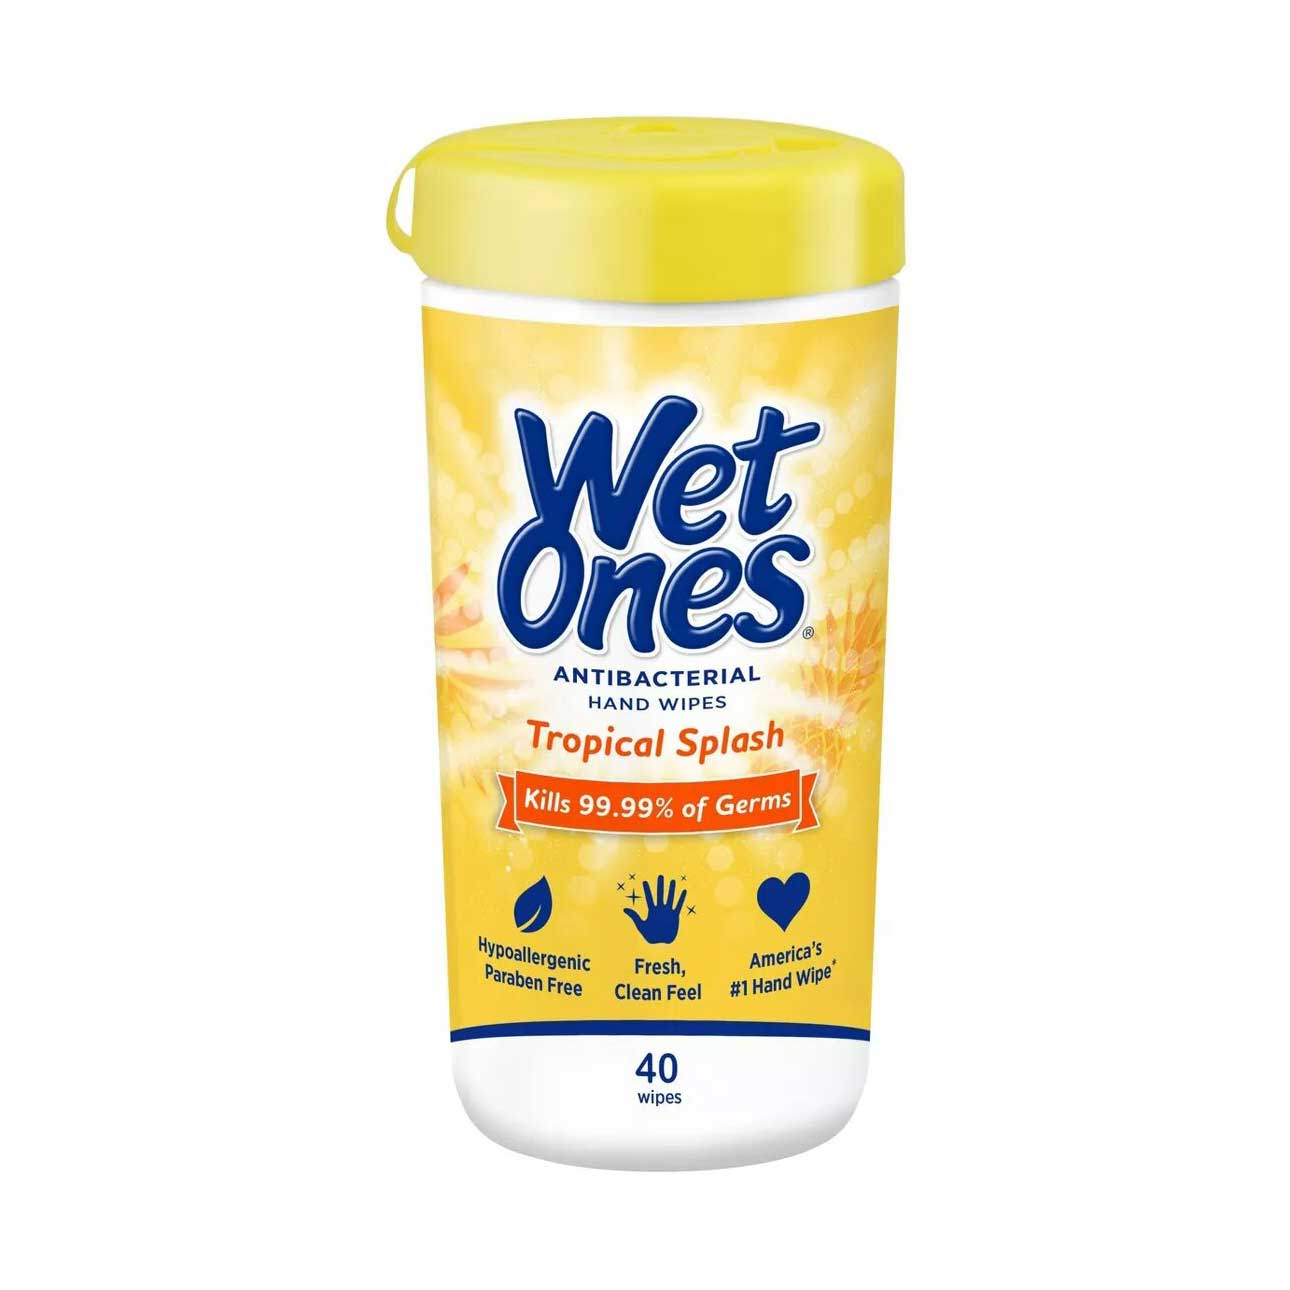 Wet Ones Antibacterial Hand Wipes Canister Tropical Splash